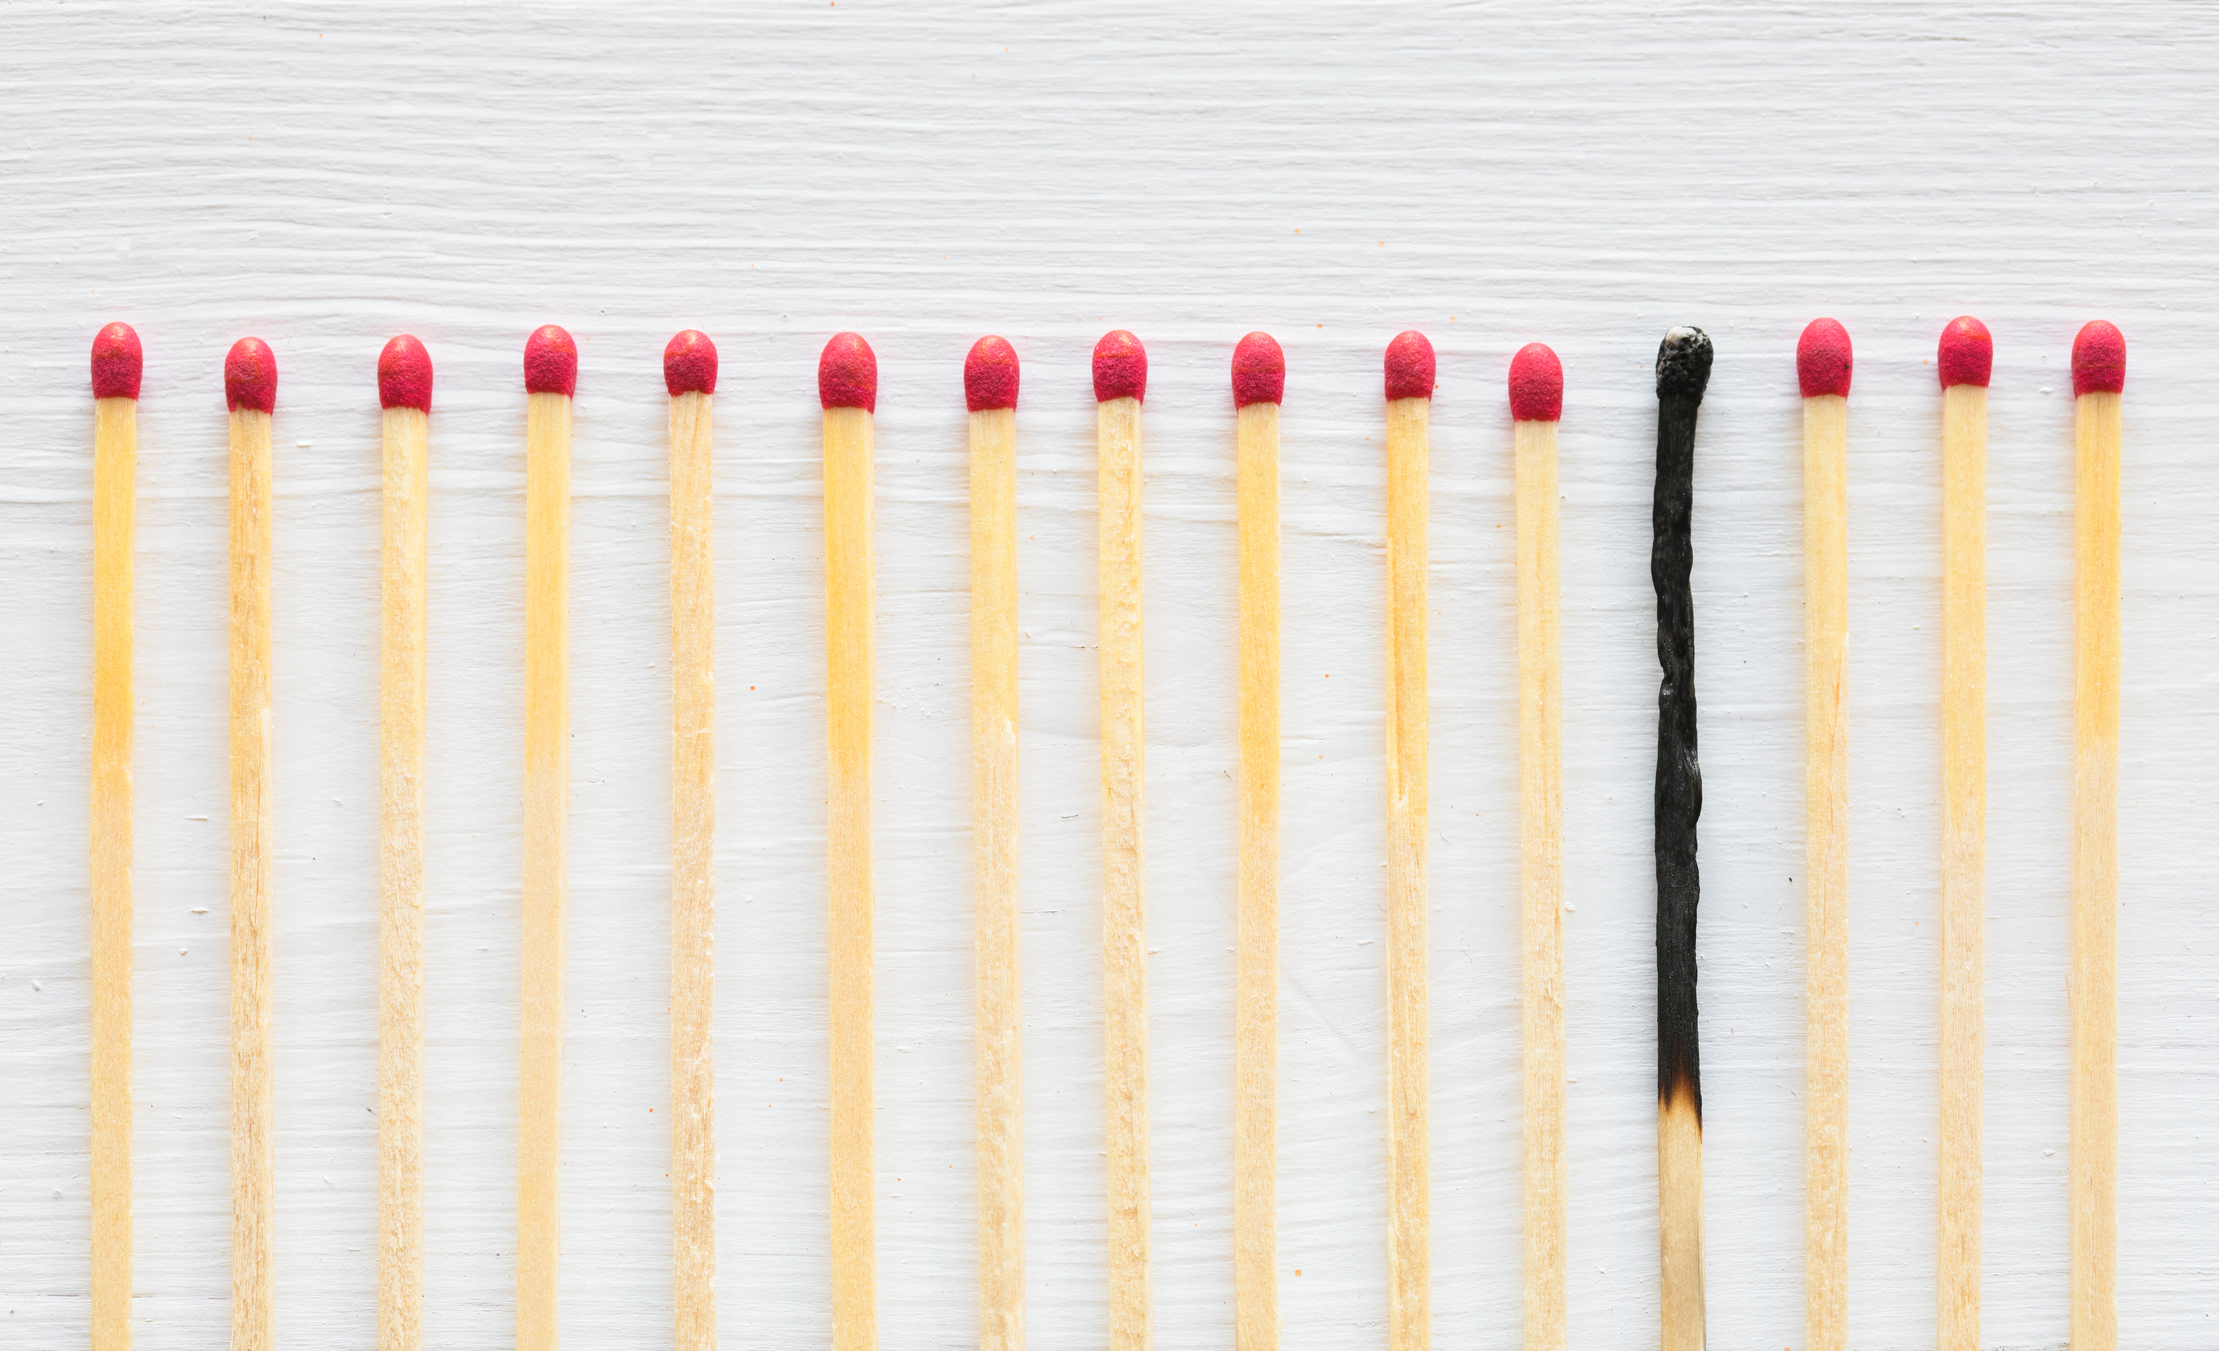 Grinvalds/ Getty Images